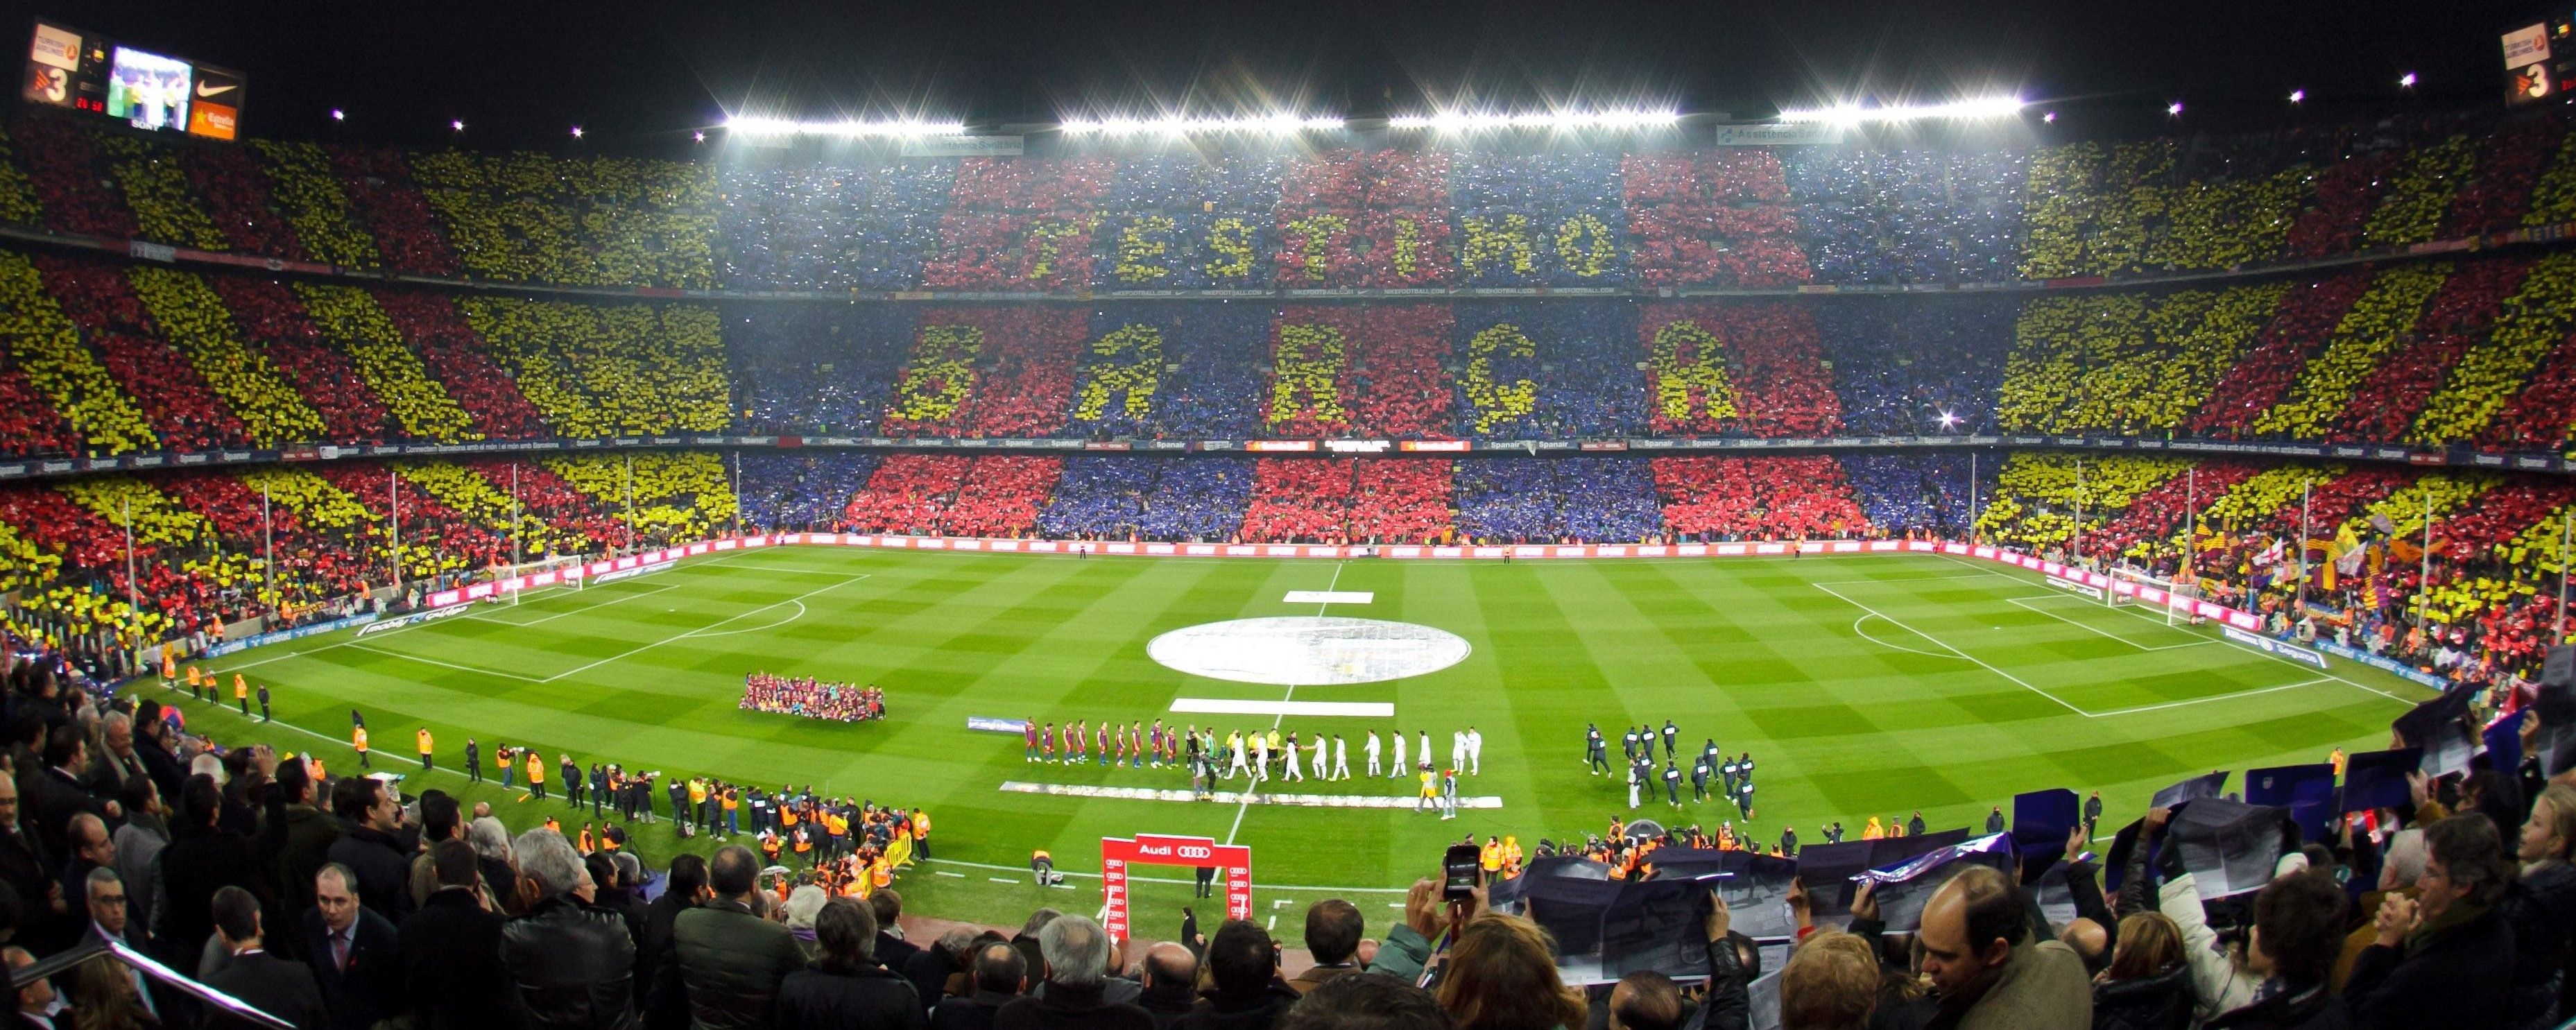 camp-nou-barcelona-competitions-sport